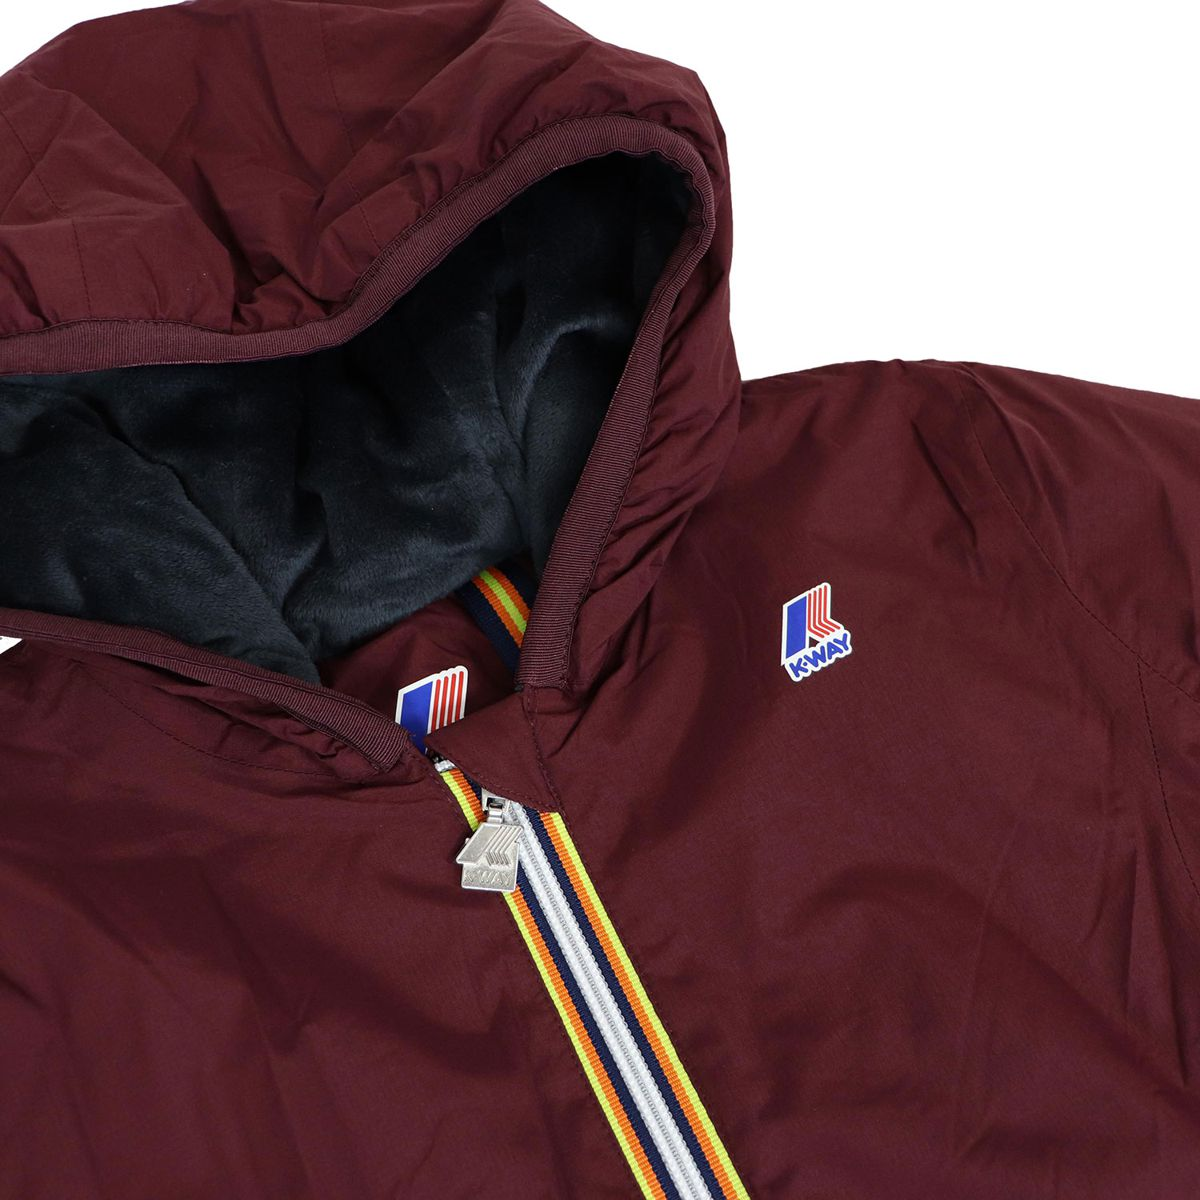 LILY MICRO RIPSTOP jacket with marmot effect inside Bordeaux K-Way